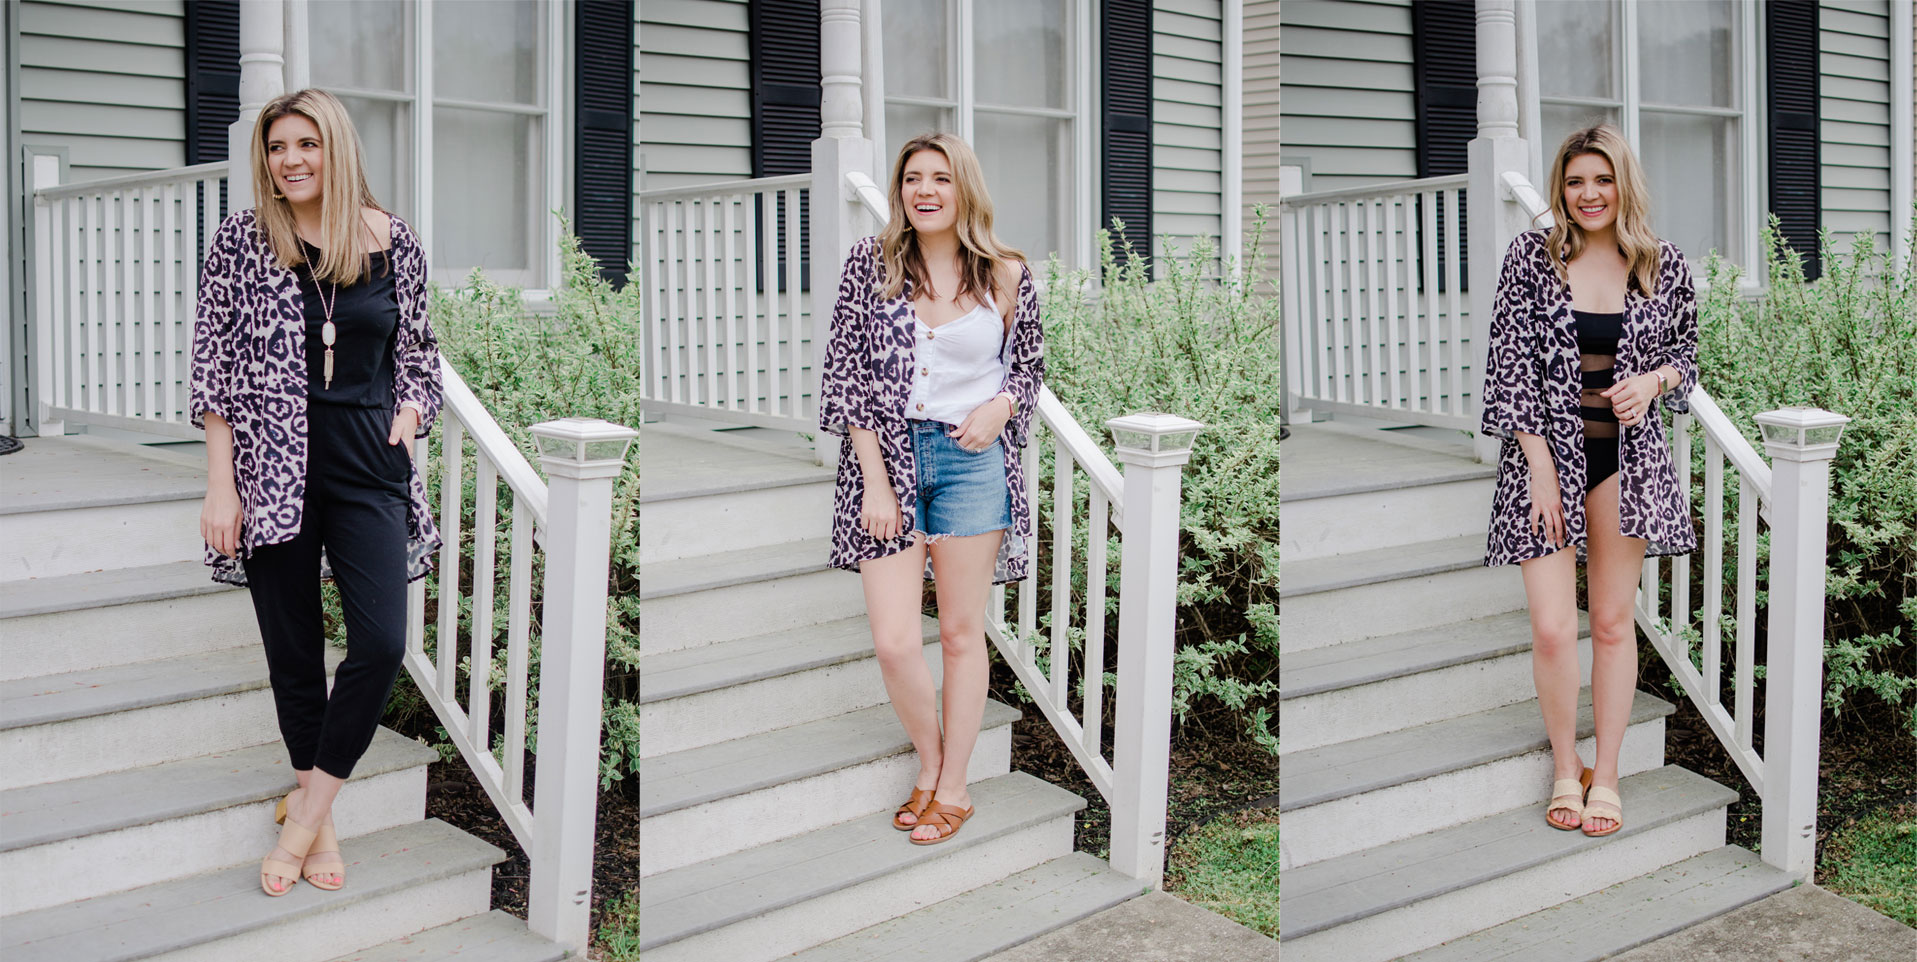 Virginia blogger, Lauren Dix, shares six kimono outfits for spring and summer.